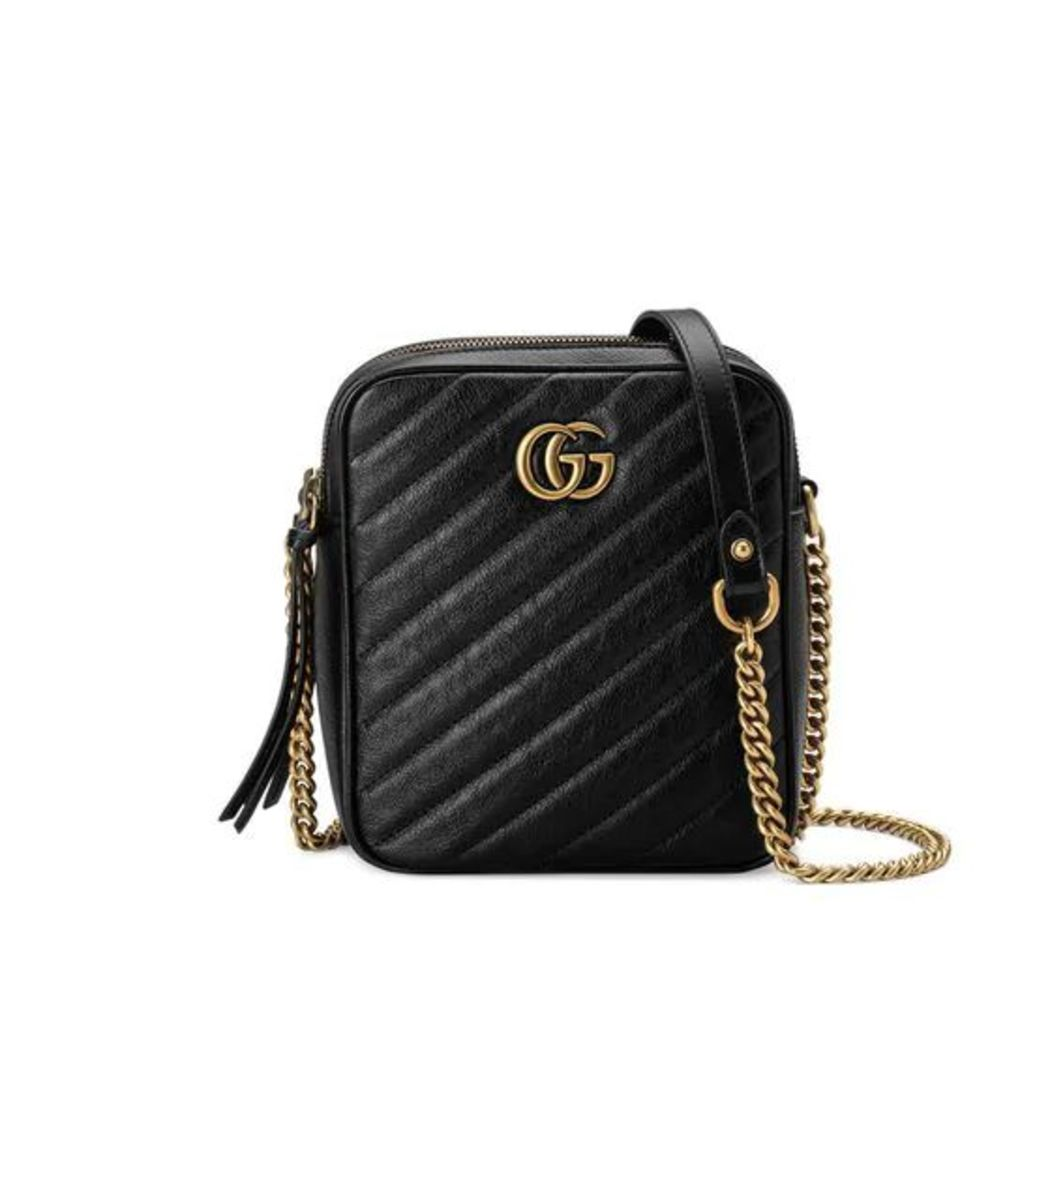 da309efd43496e Home / Gucci / GG Marmont Mini Shoulder Bag. prev